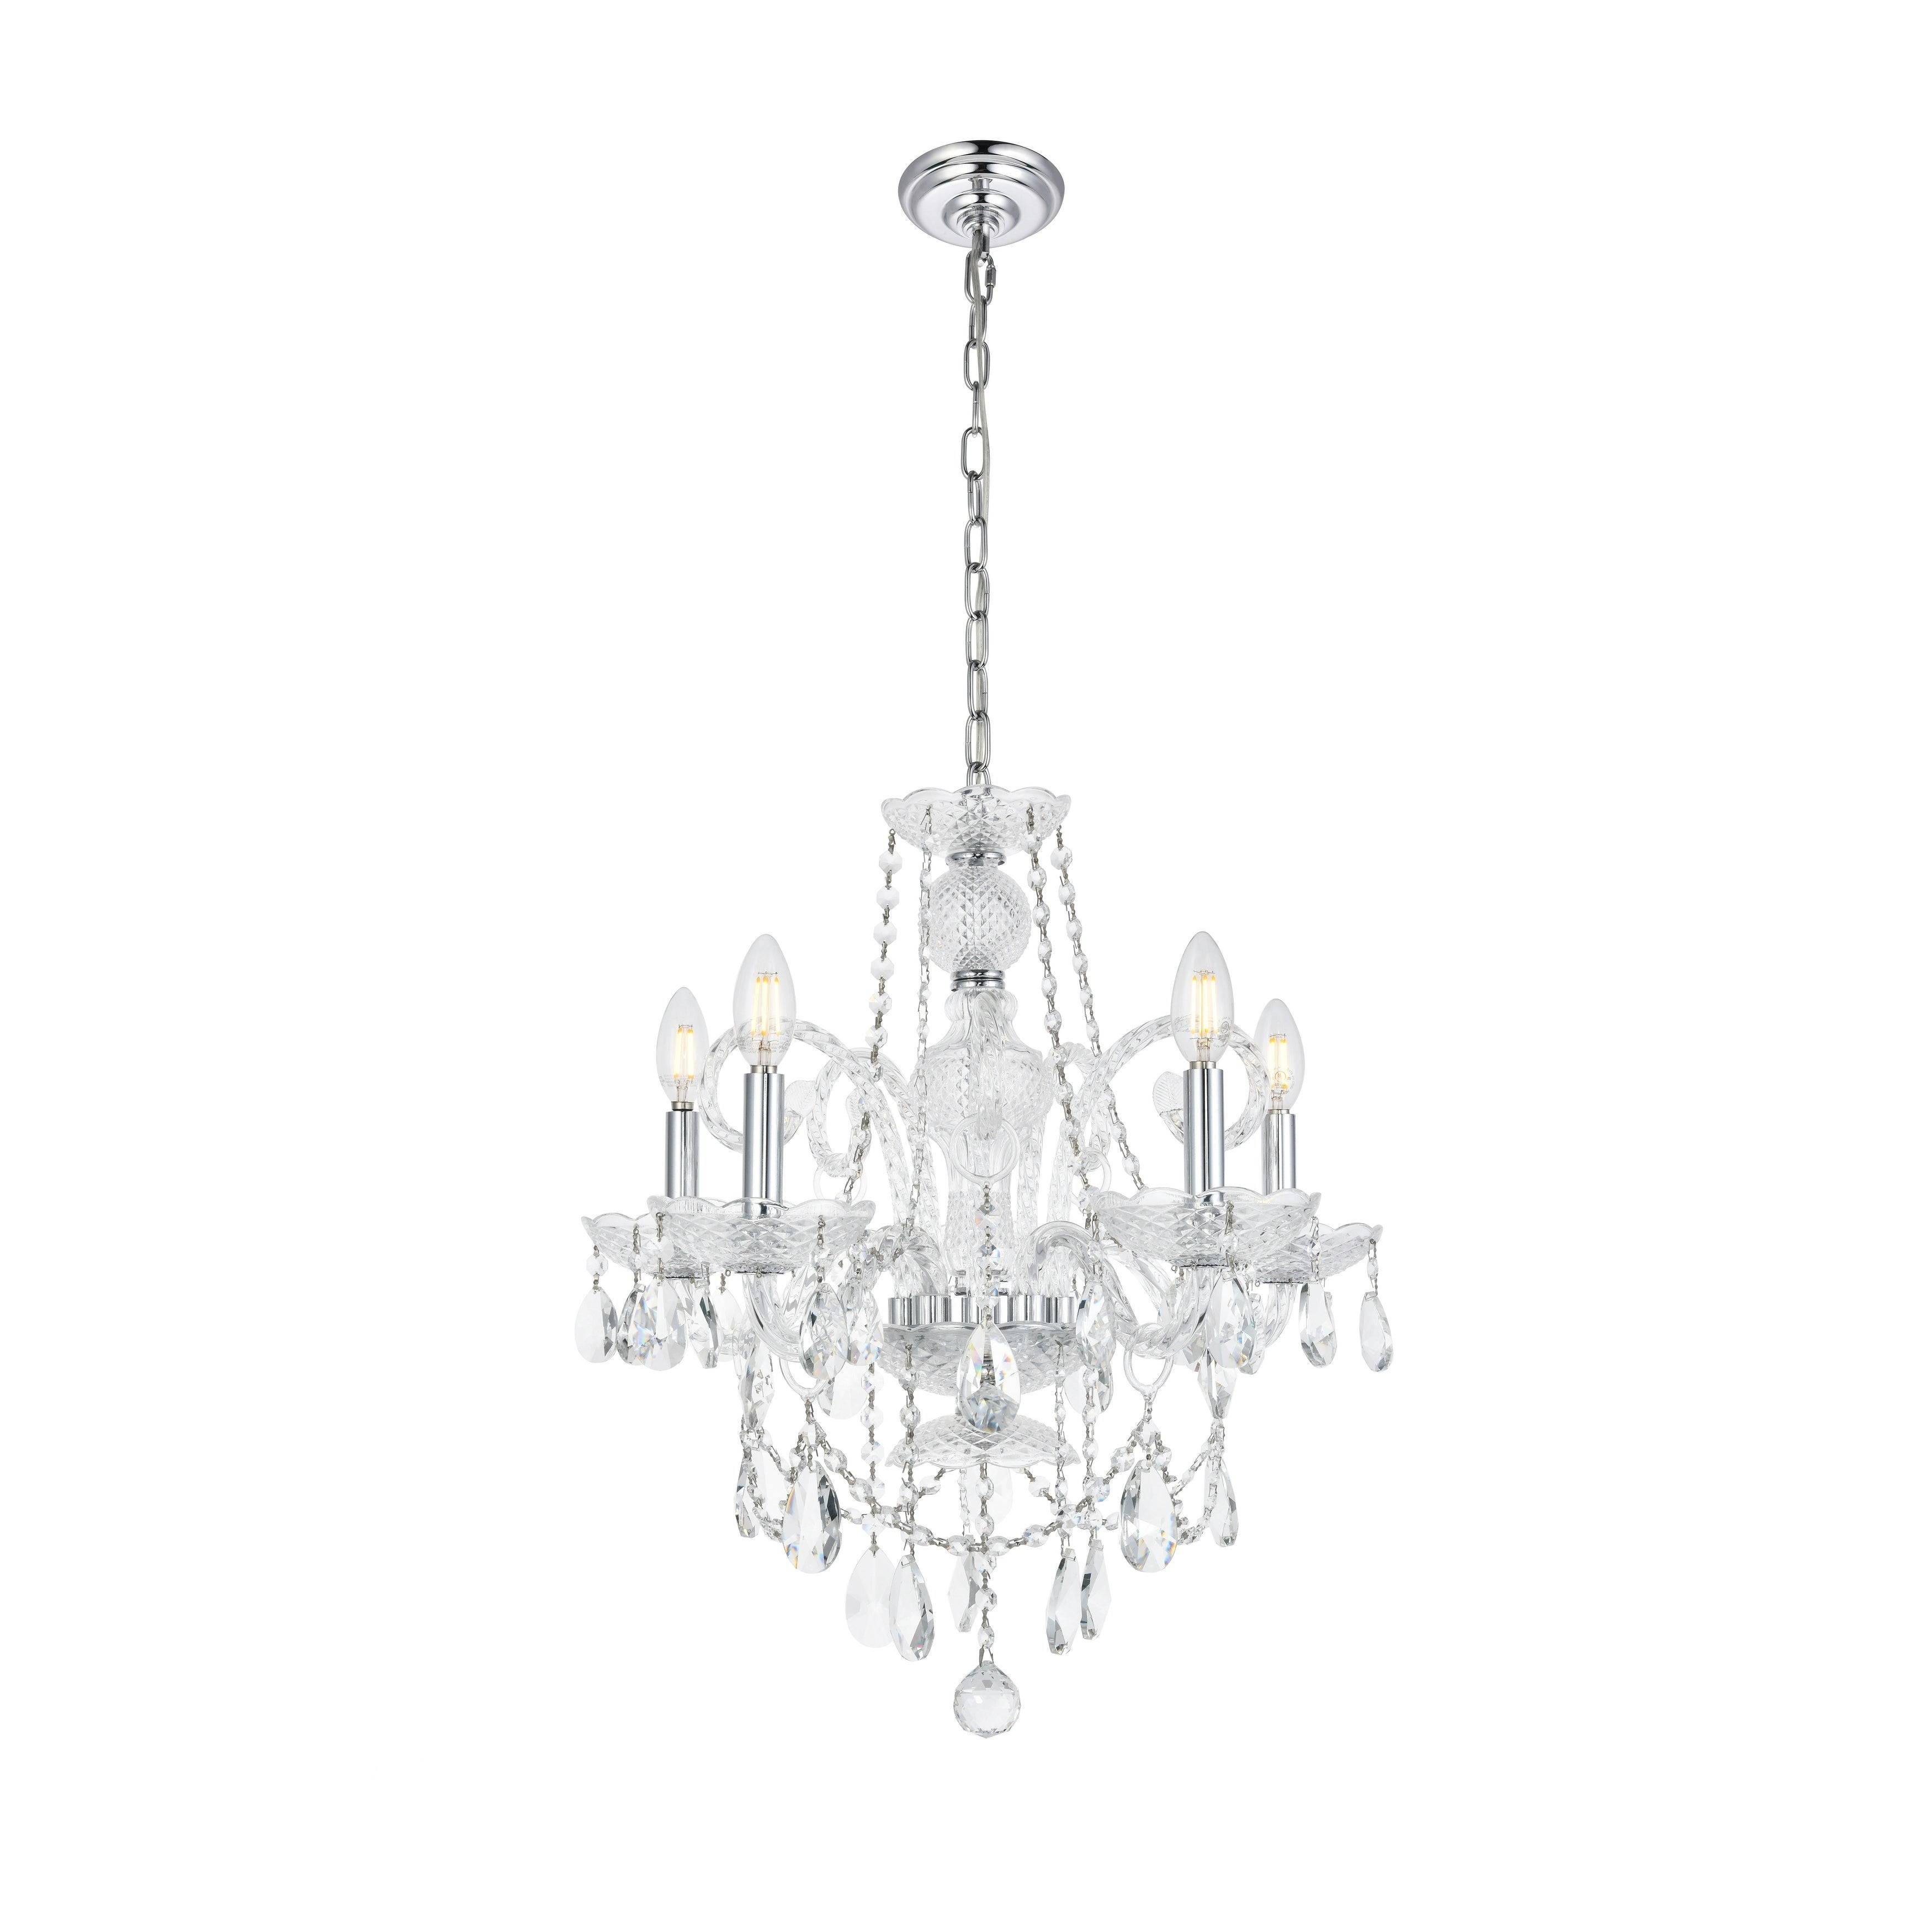 Elegant Lighting Ceiling Lights | Shop Our Best Lighting With Regard To Hamza 6 Light Candle Style Chandeliers (Photo 27 of 30)